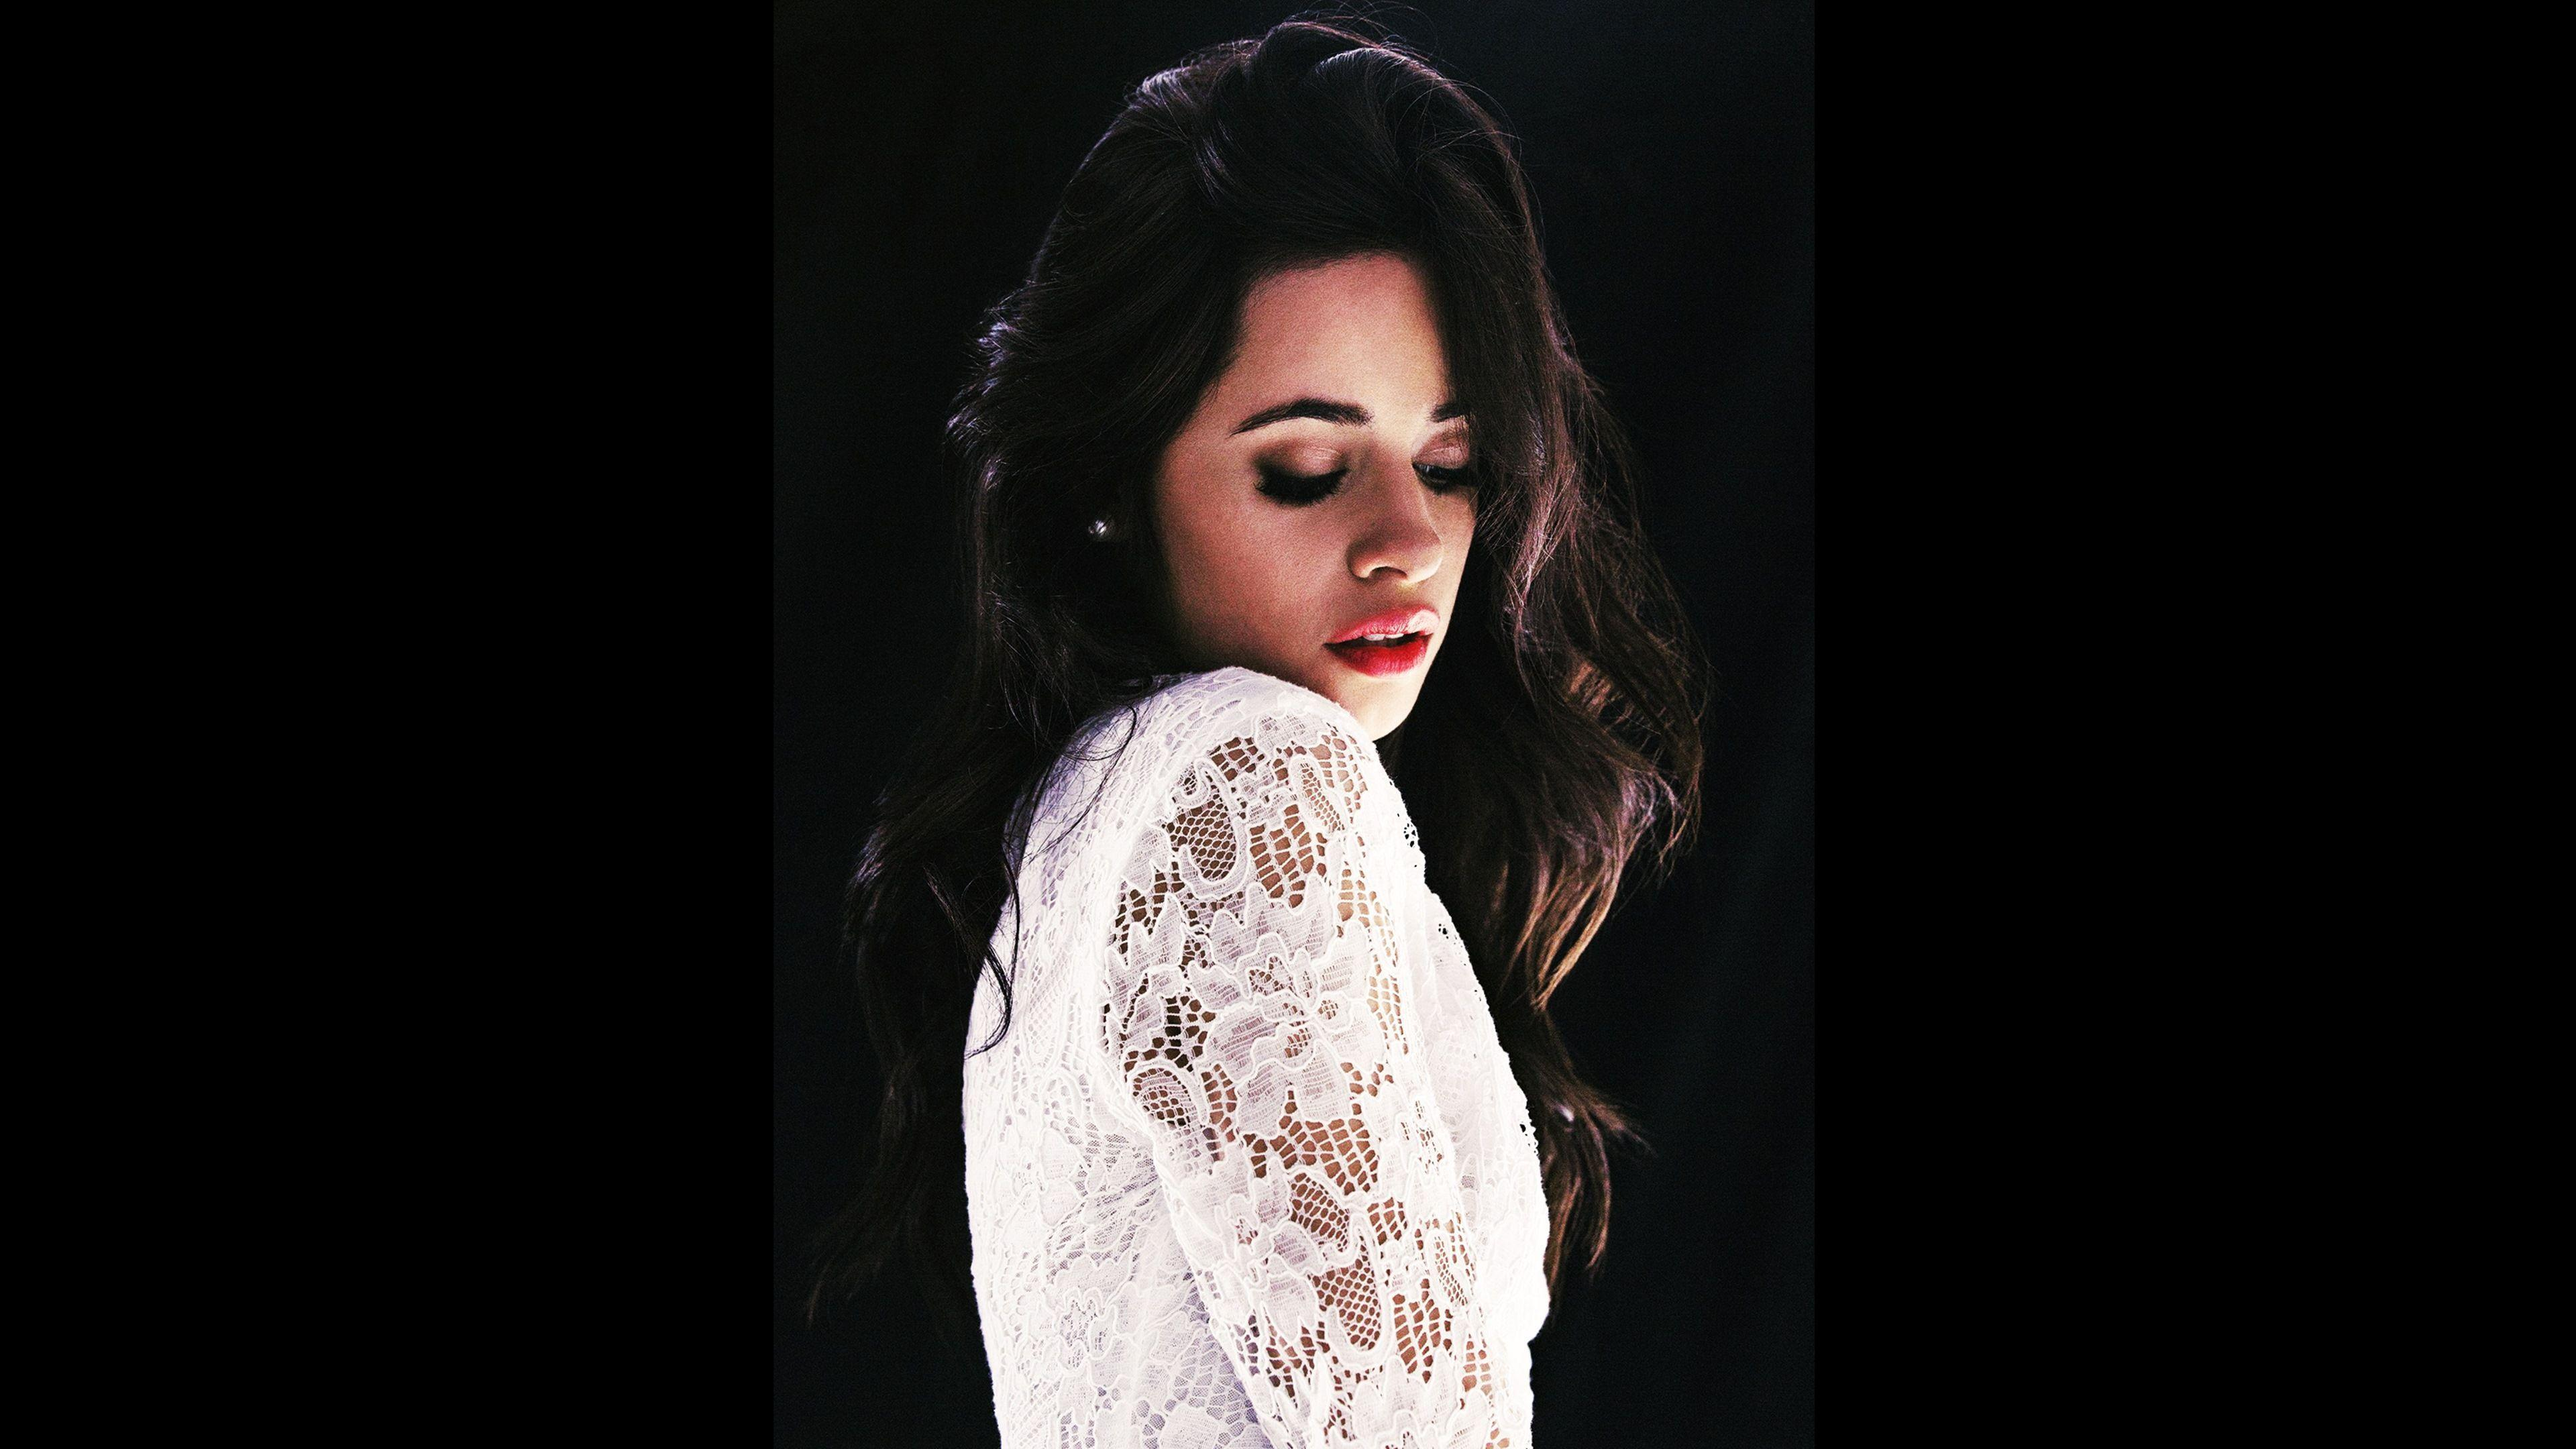 Camila Cabello HD Wallpapers 14976 - Baltana